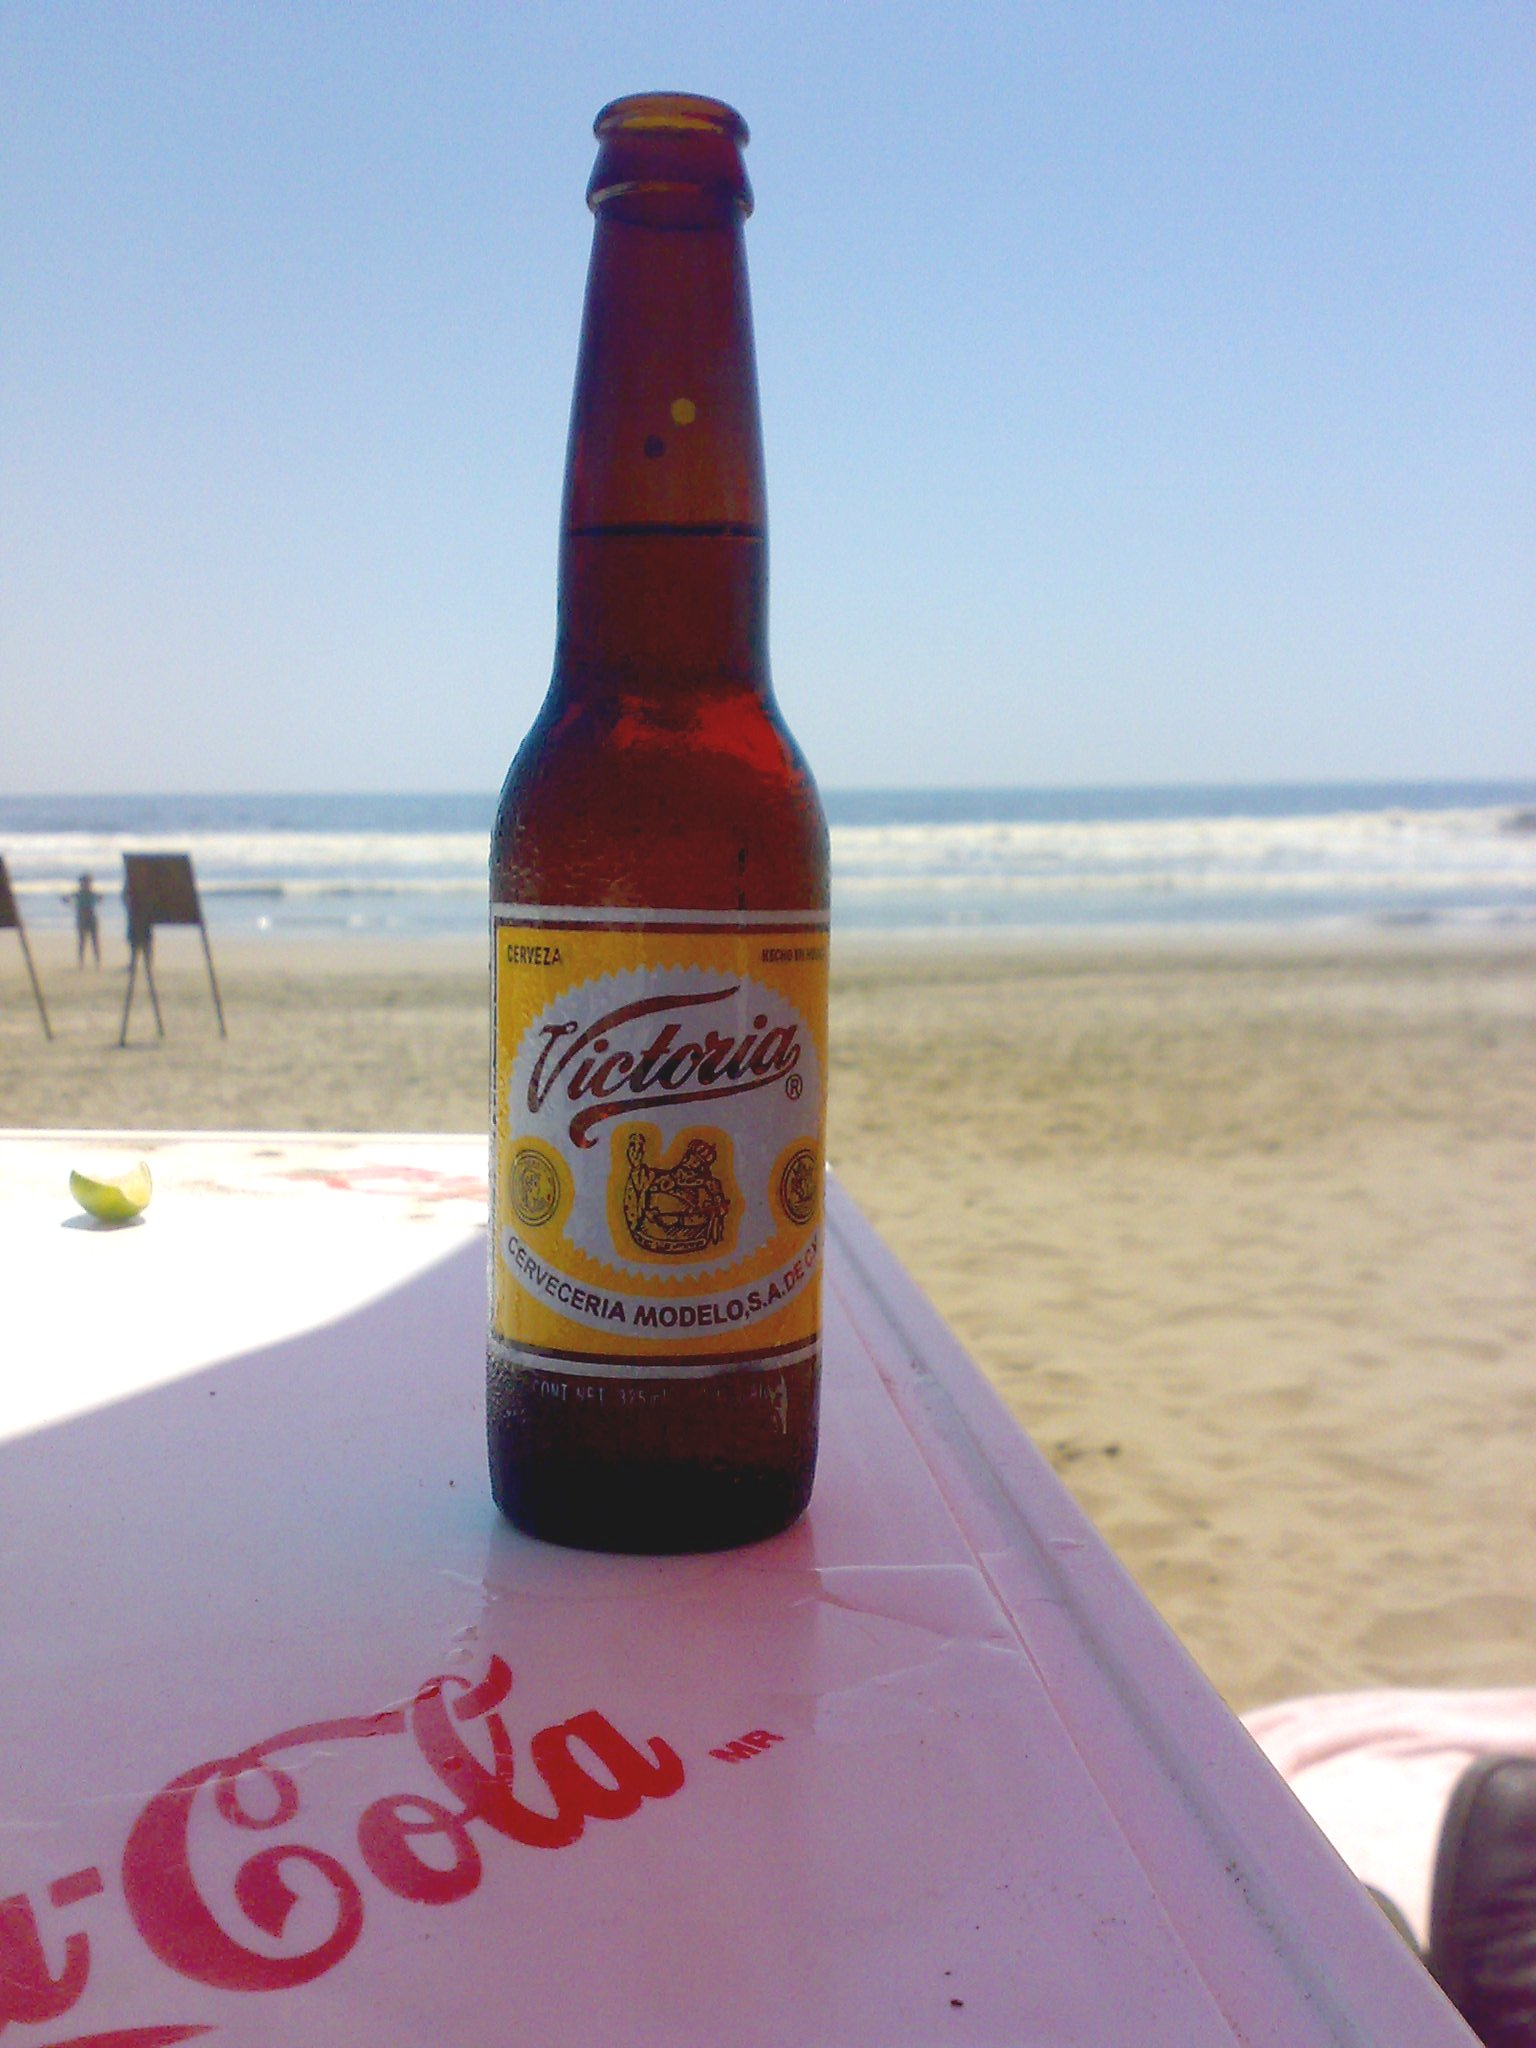 http://upload.wikimedia.org/wikipedia/commons/8/8d/Cerveza_victoria.jpg